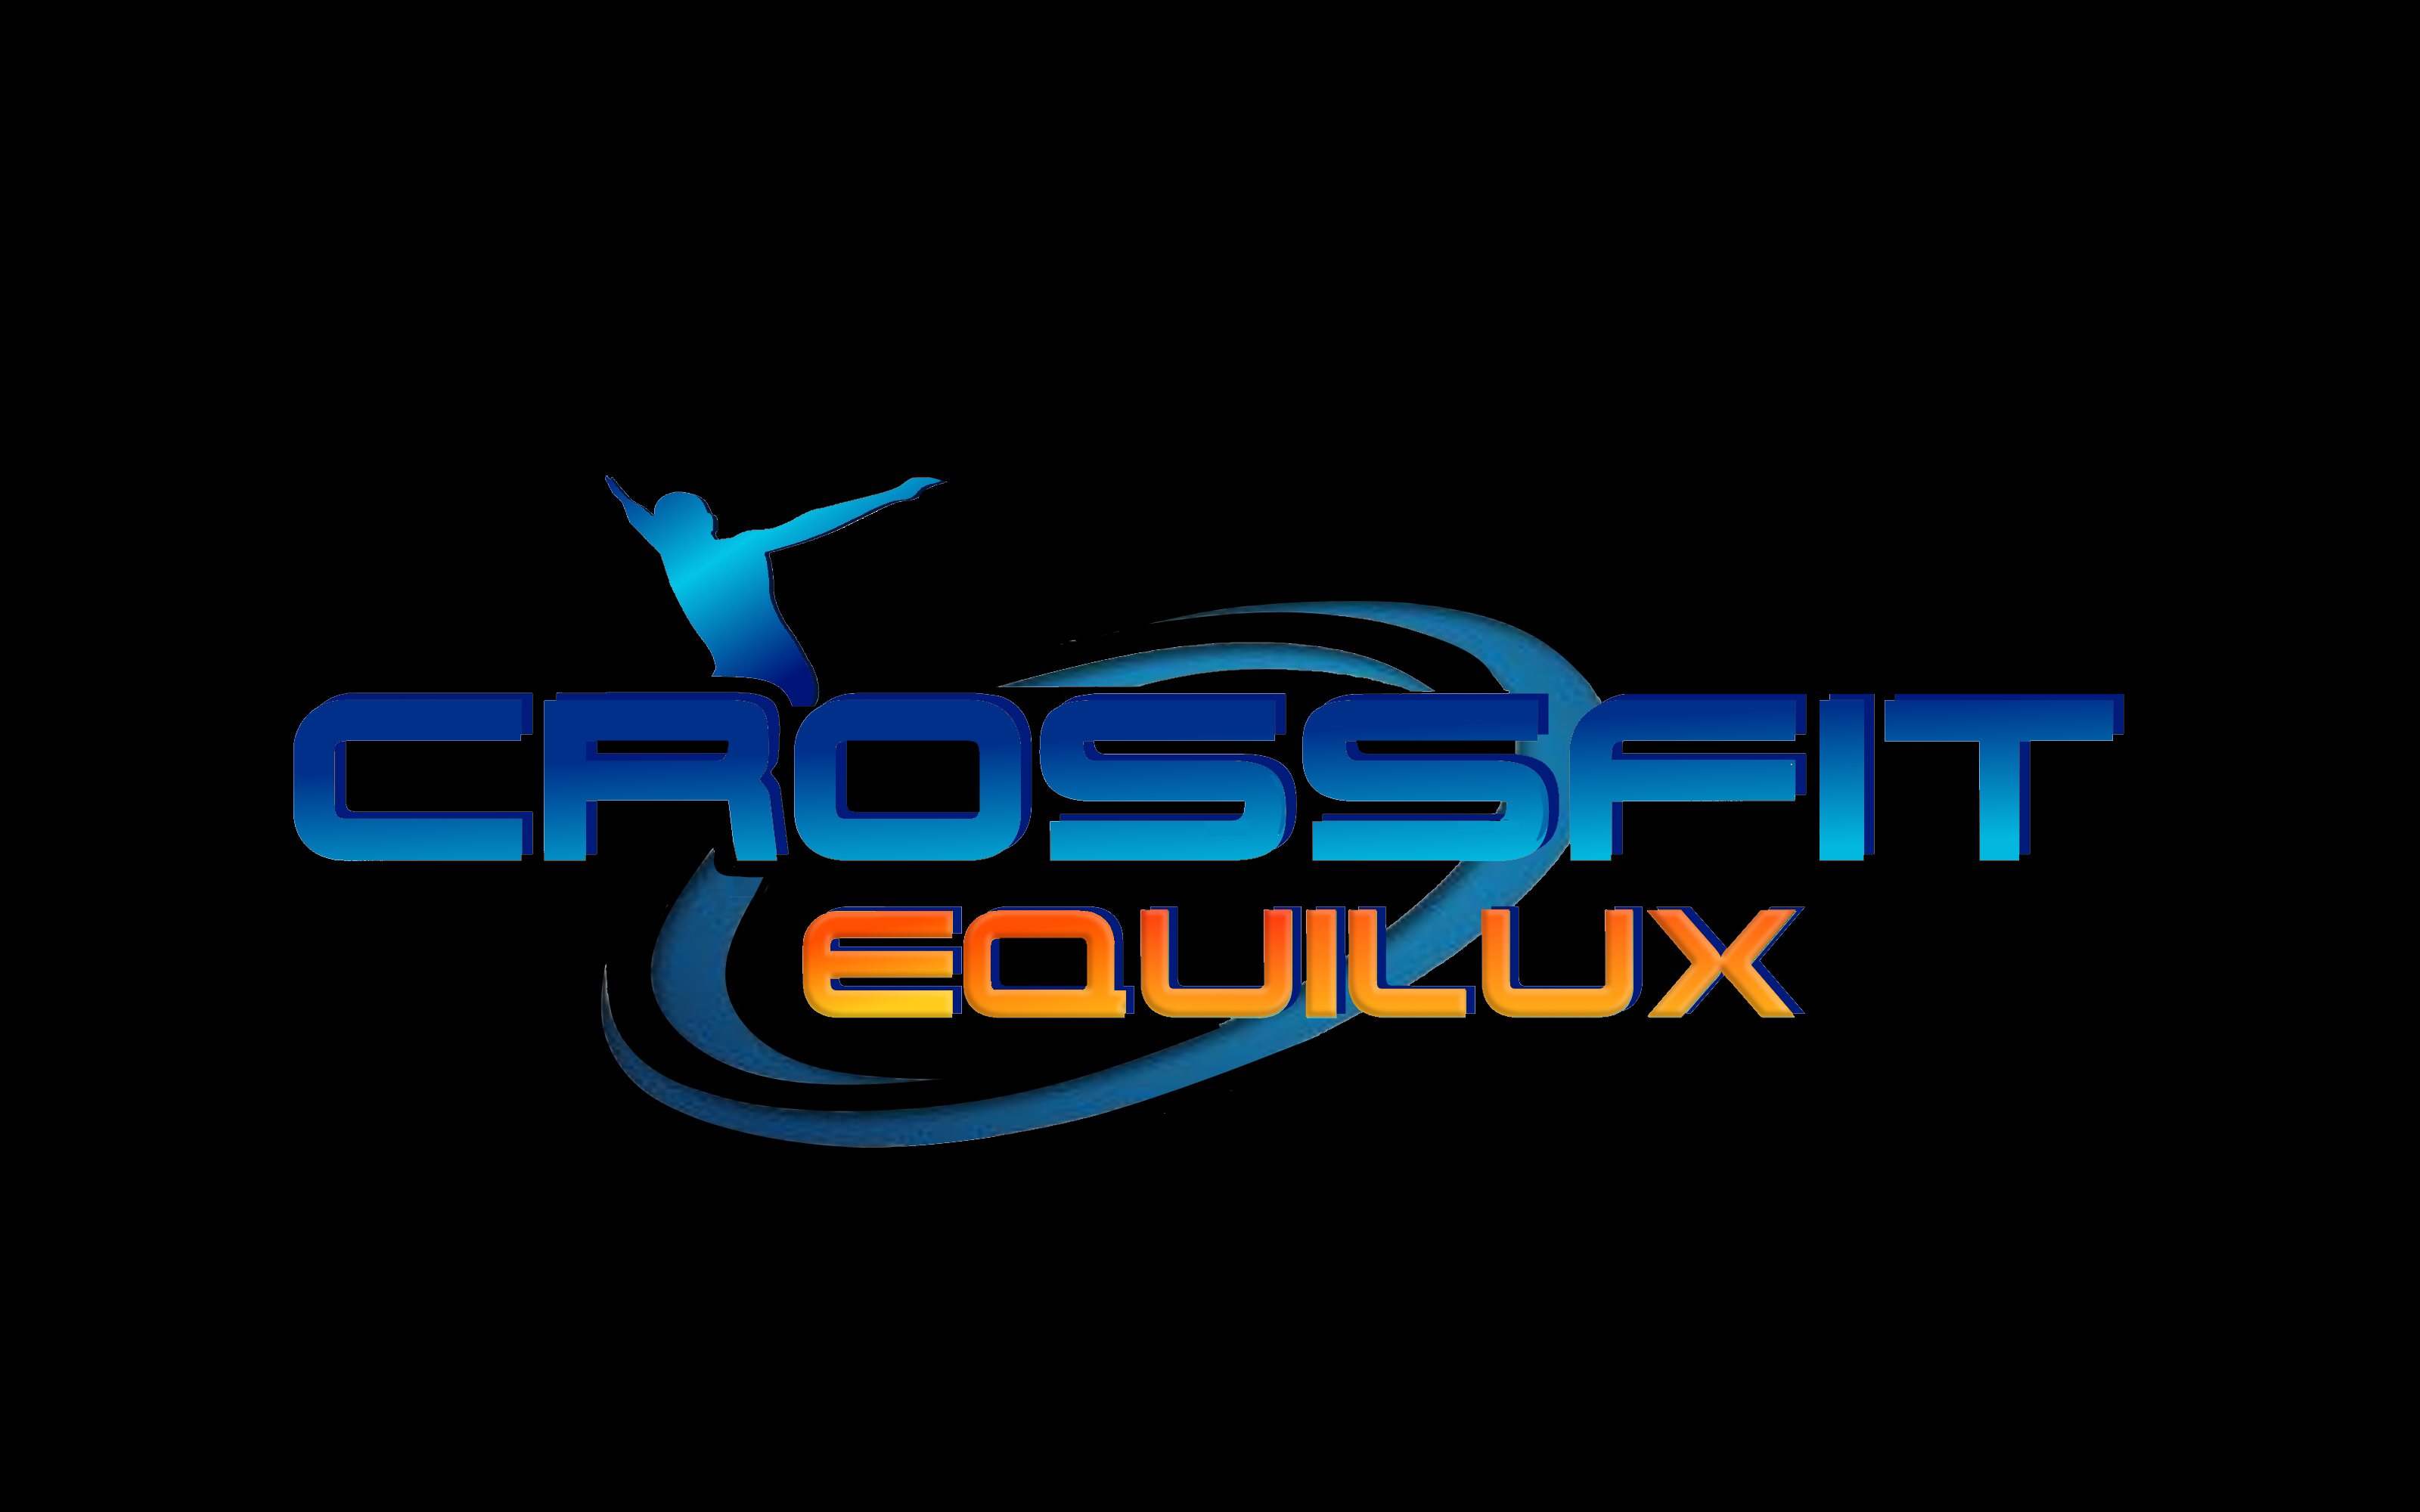 Logo Design by Roberto Bassi - Entry No. 89 in the Logo Design Contest Unique Logo Design Wanted for CrossFit Equilux.